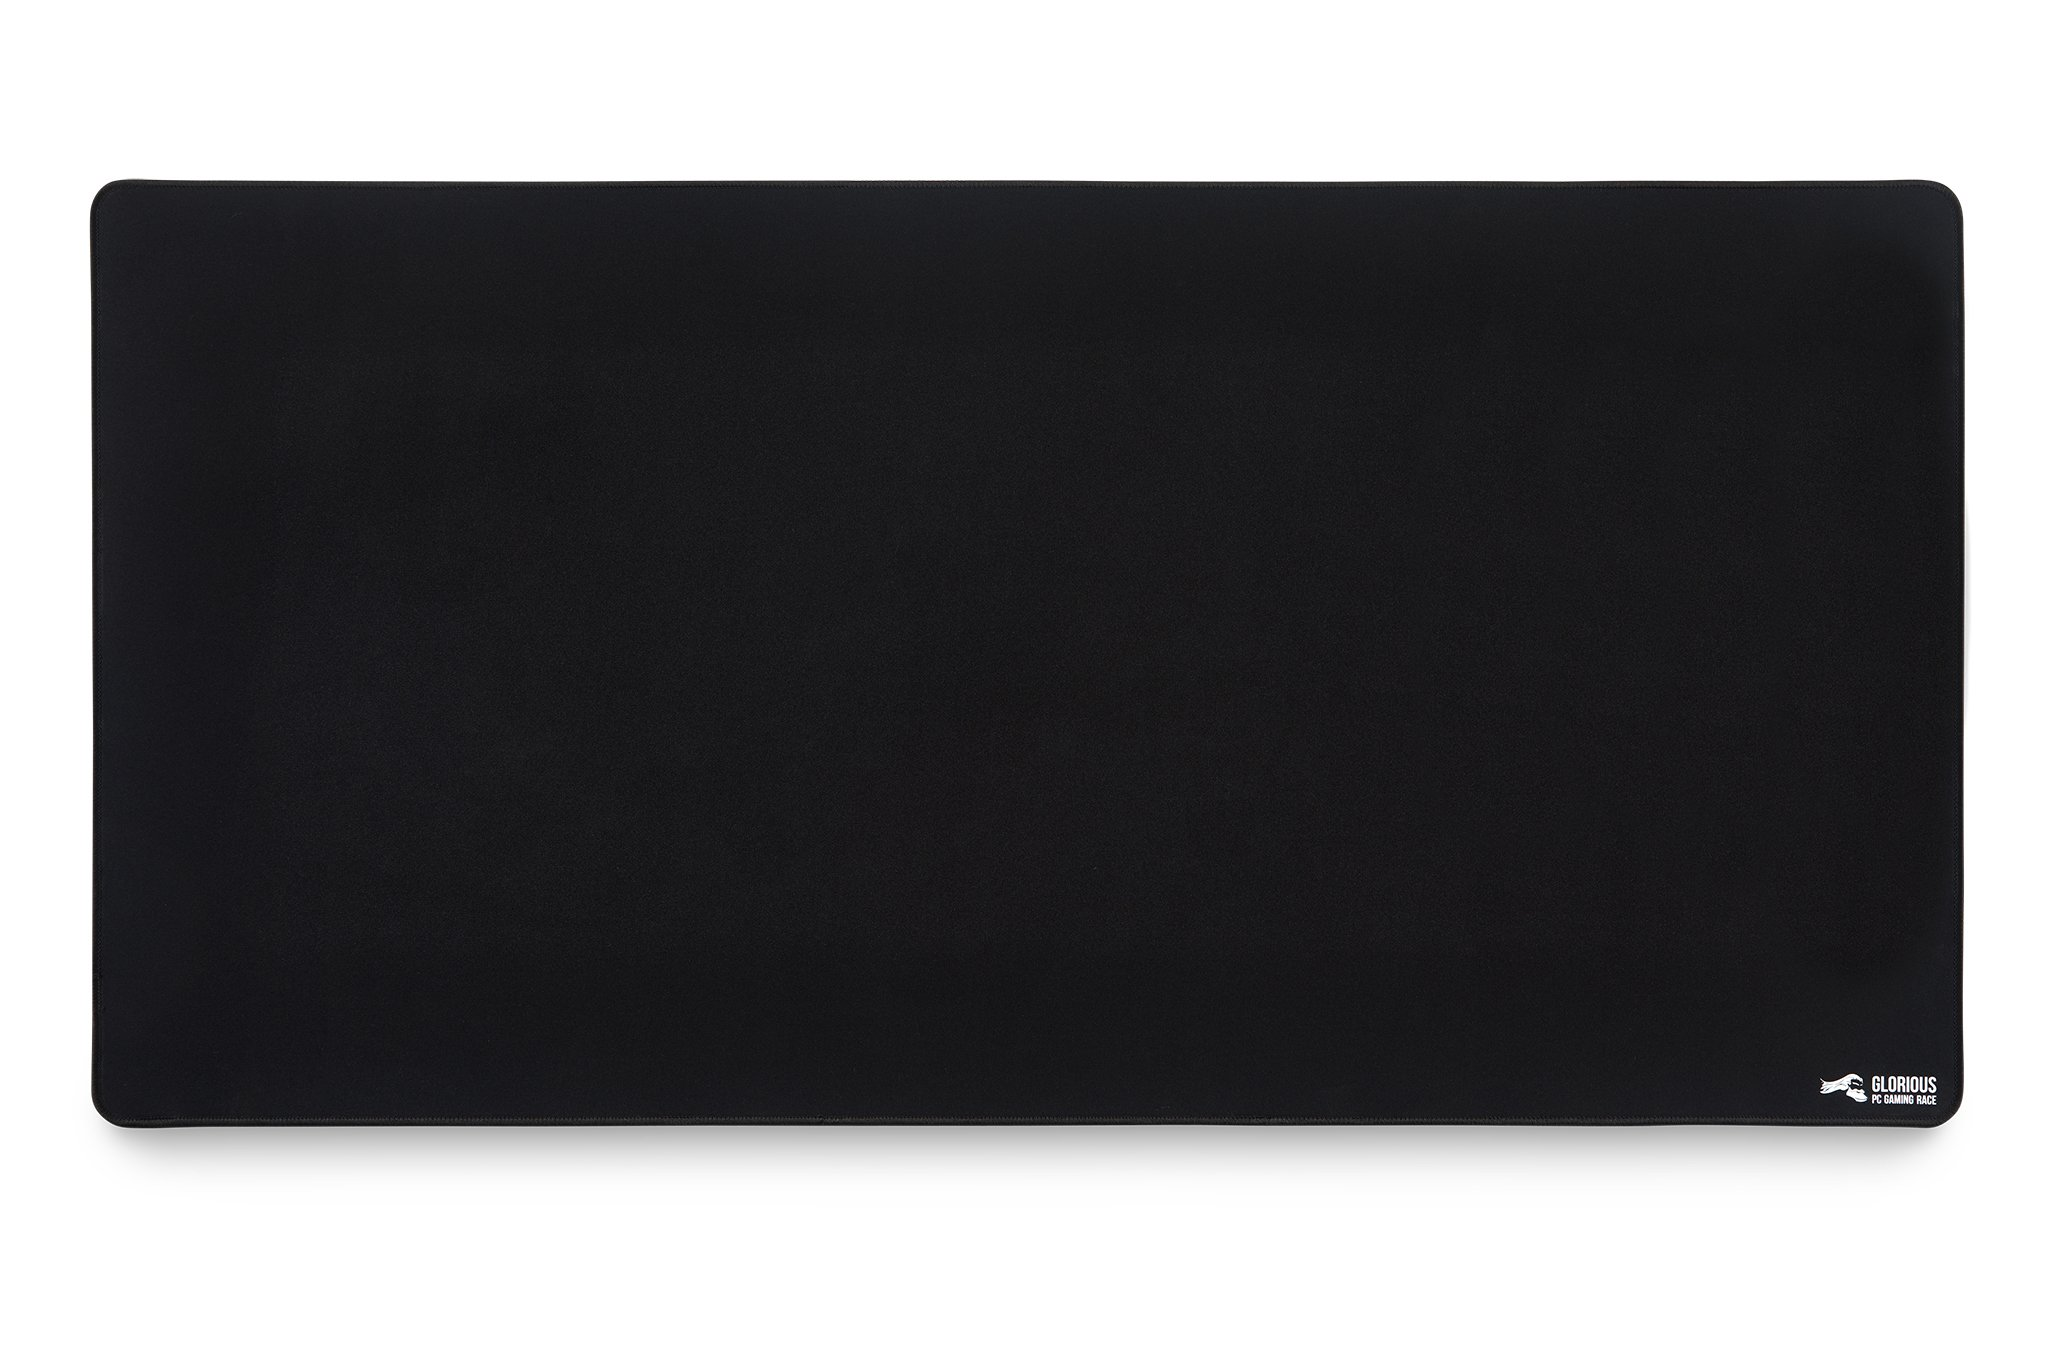 Glorious XXL Extended Gaming Mouse Mat/Pad - Large, Wide (Long) Black Mousepad, Stitched Edges | 36''x18''x0.12'' (G-XXL)